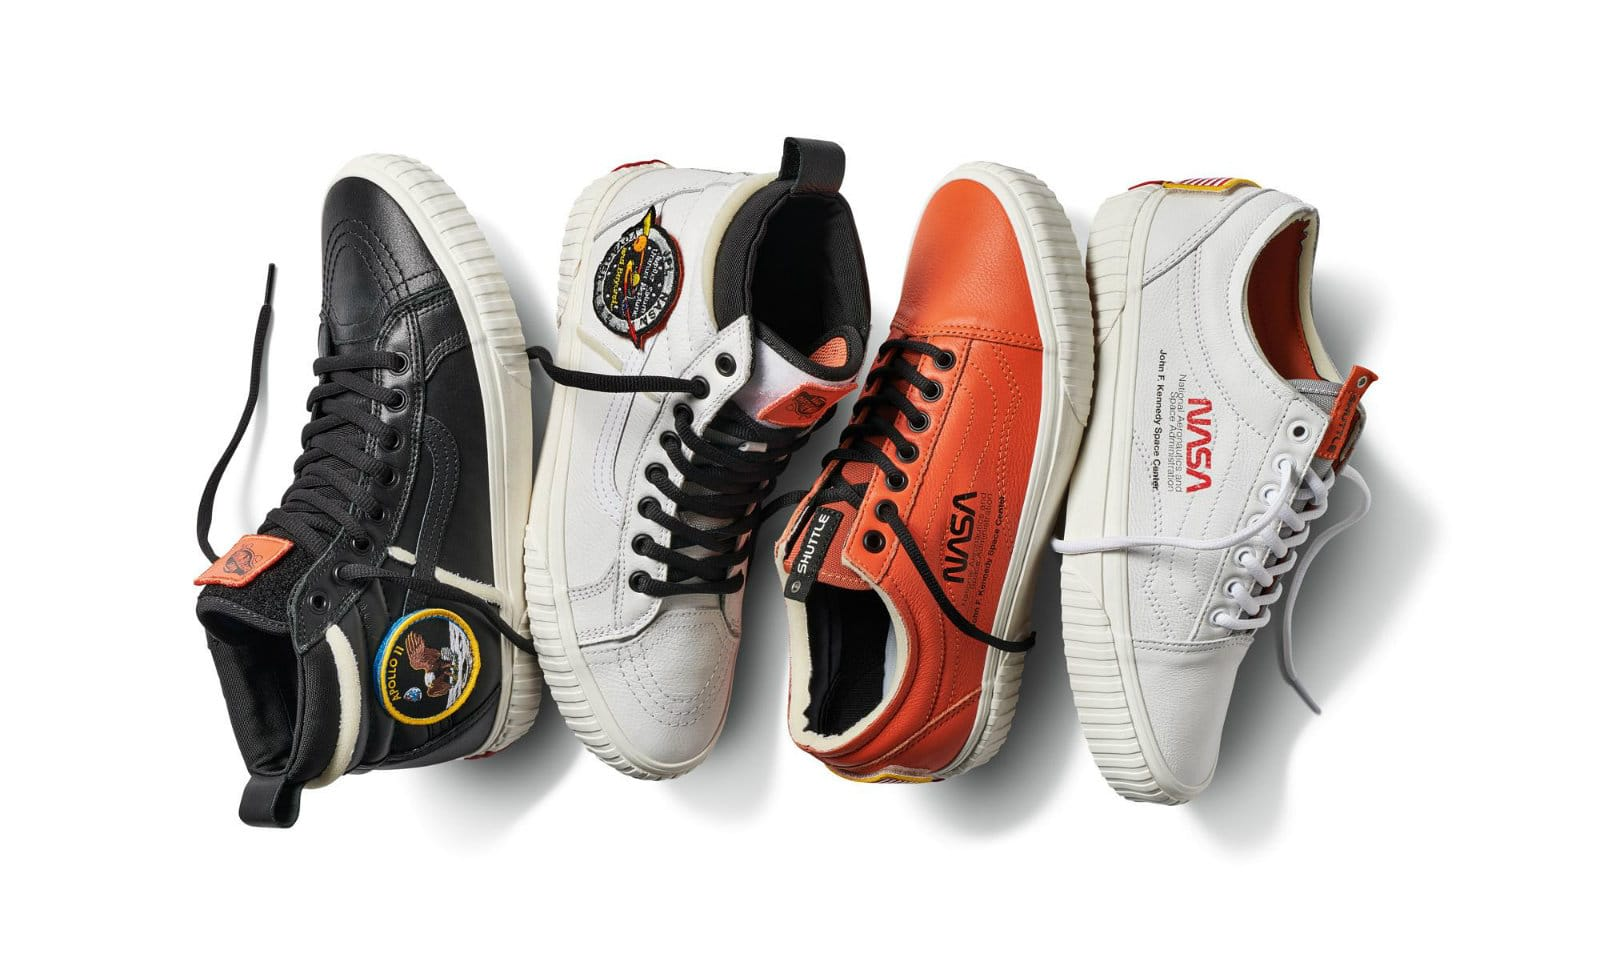 c0d346134388c9 Vans  NASA collection is built for sneakerheads and space nerds